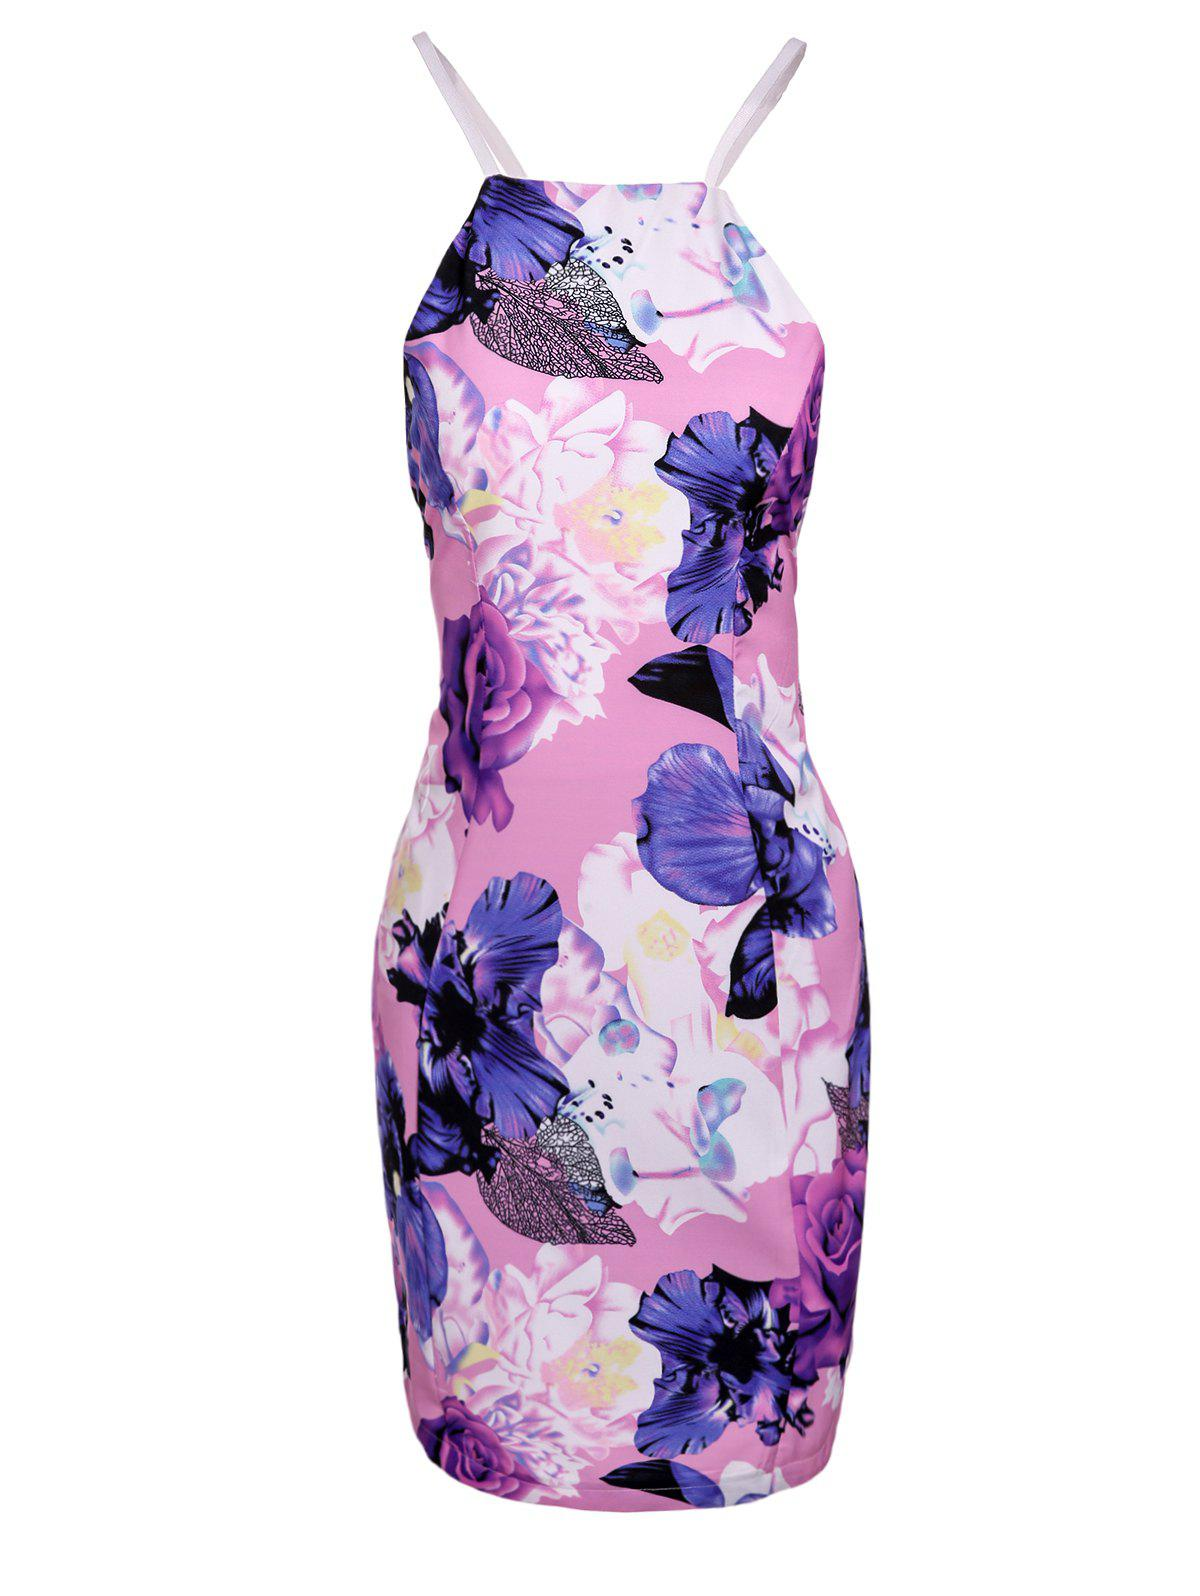 Chic Spaghetti Strap Hollow Out Floral Print Skinny Women's Dress - PINK S